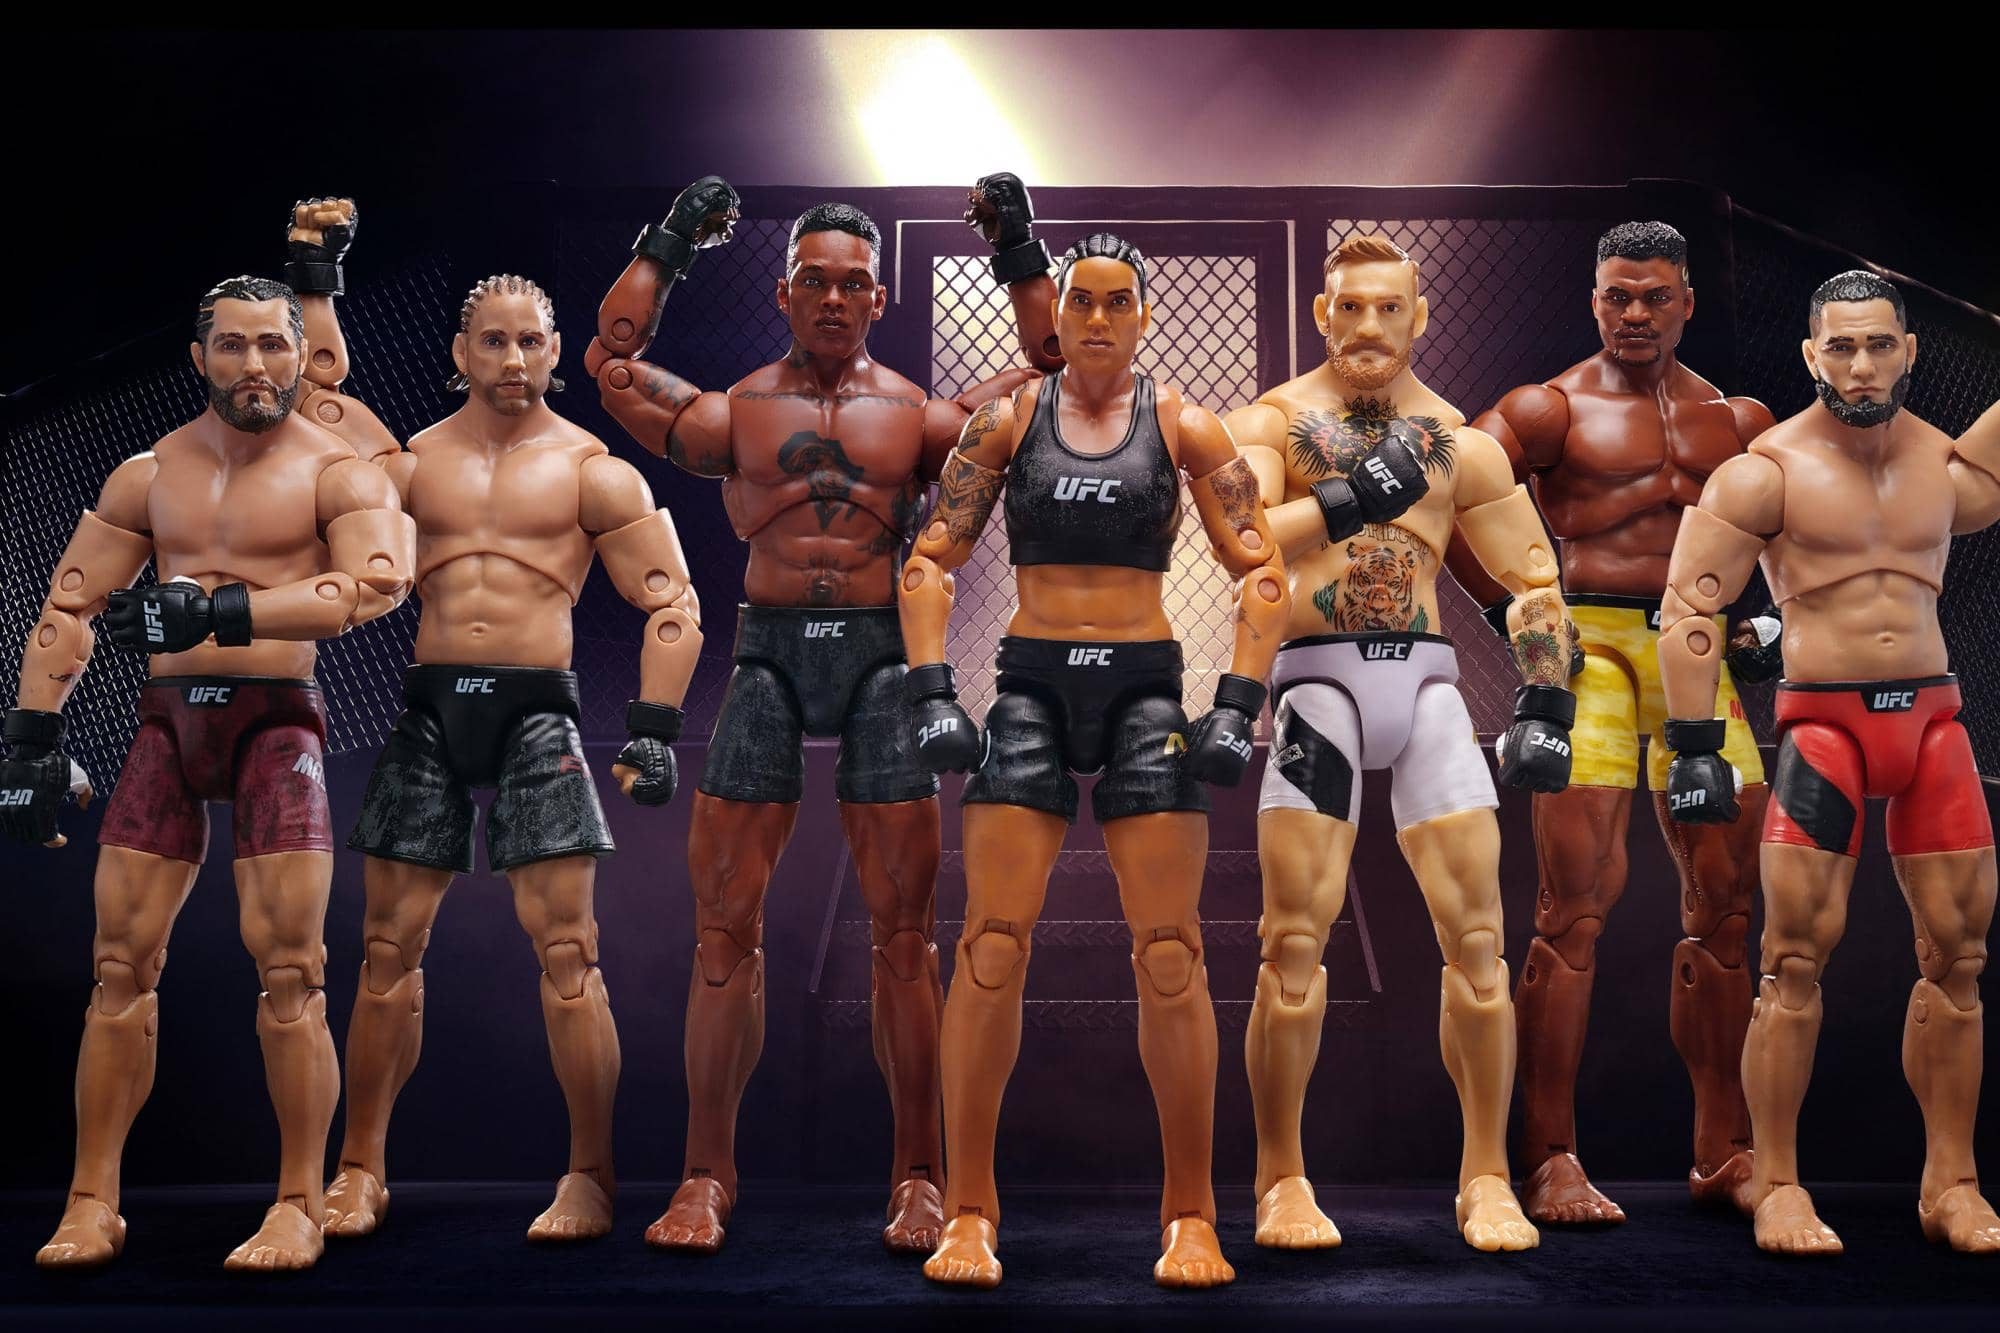 What Do You Think of UFC Action Figures?